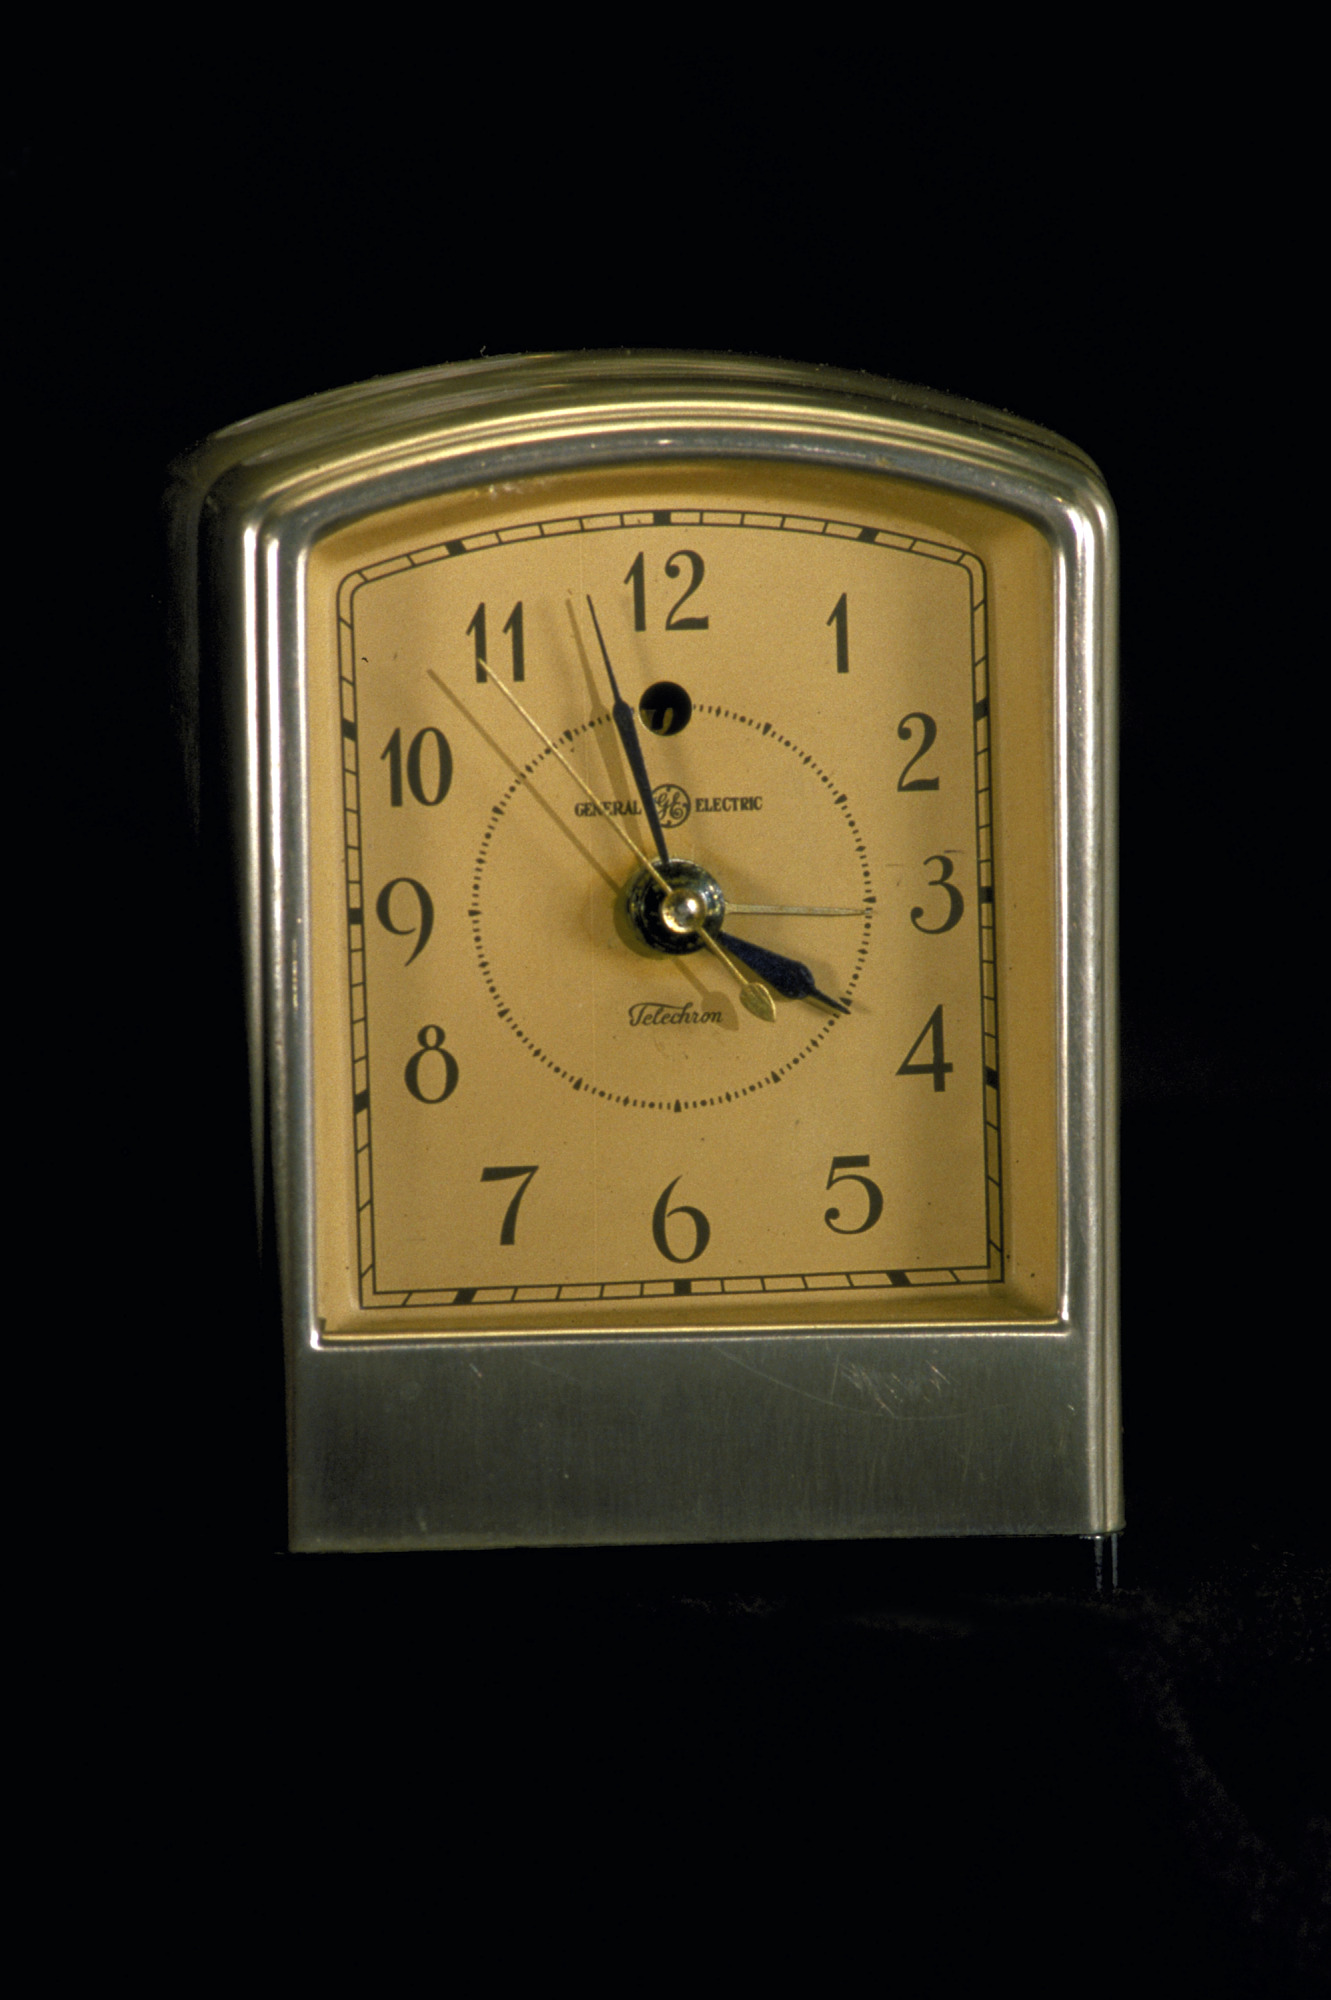 images for Telechron Electric Alarm Clock